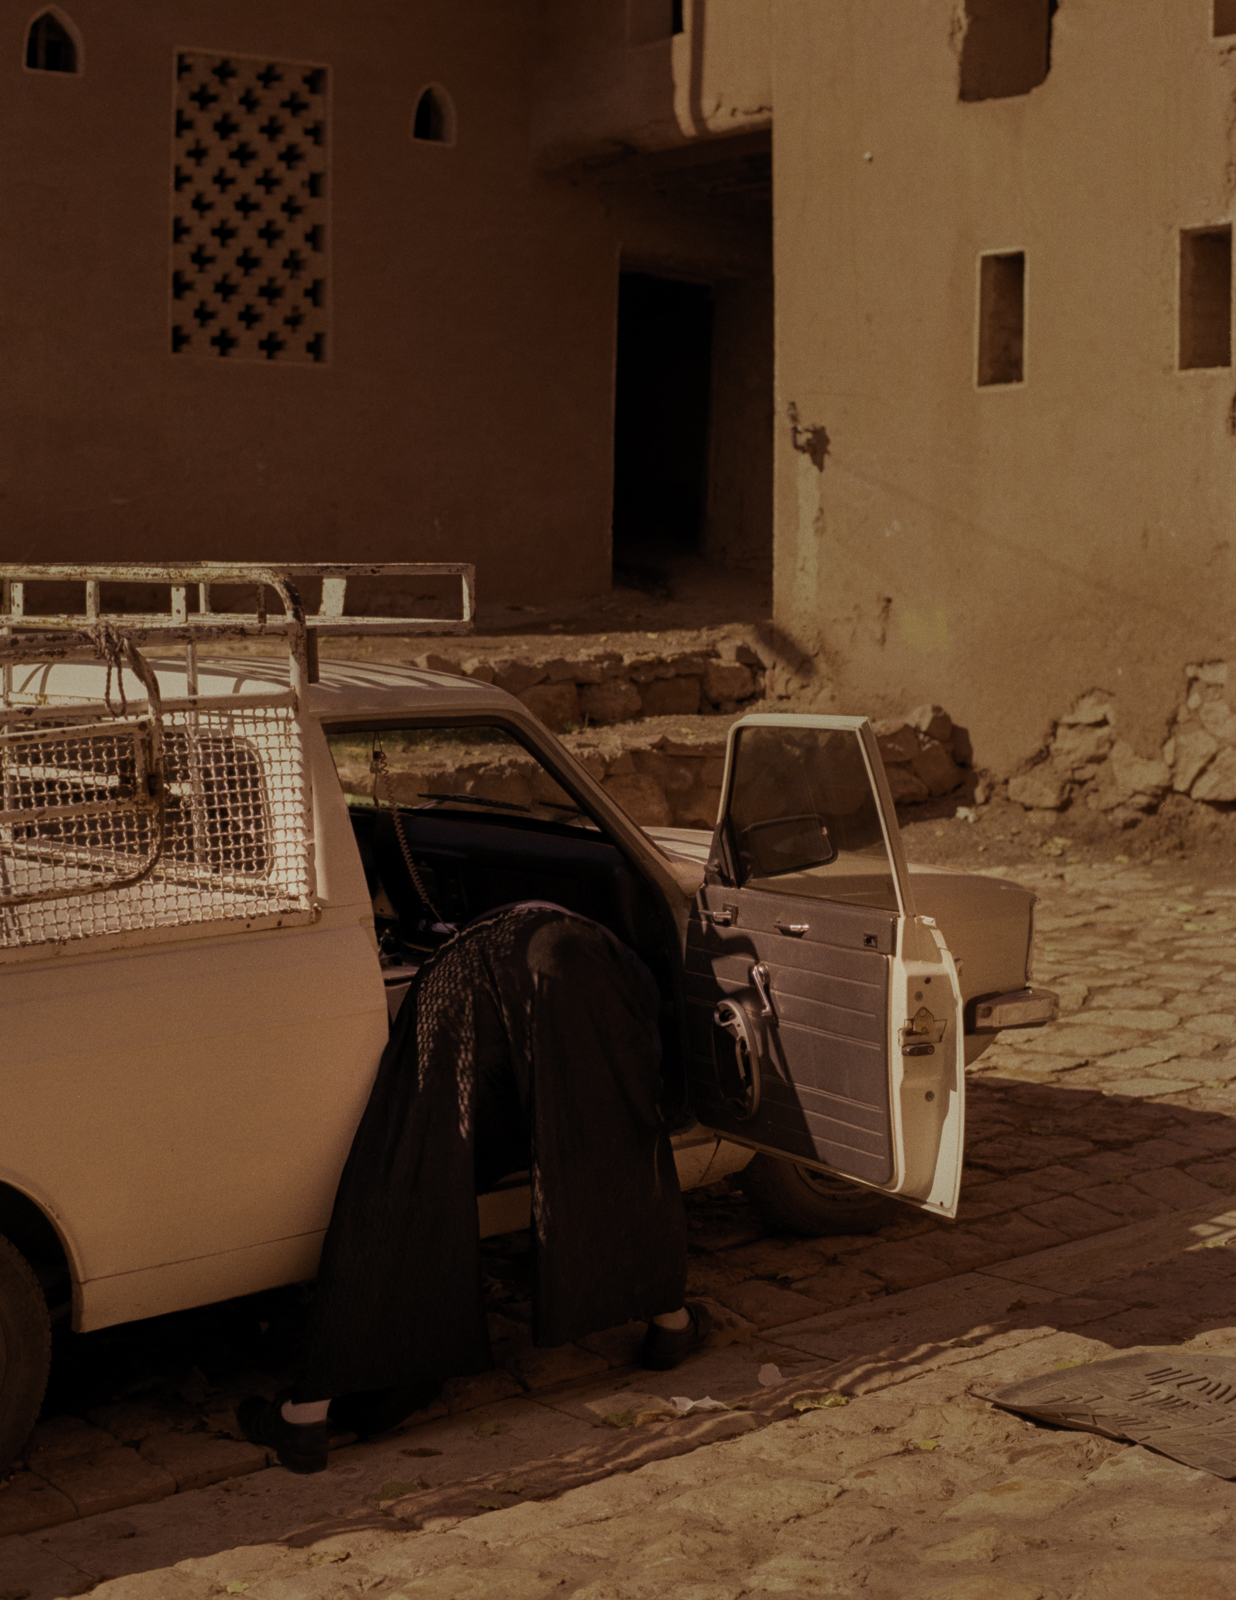 Man cleaning his car in Abyaneh, Iran